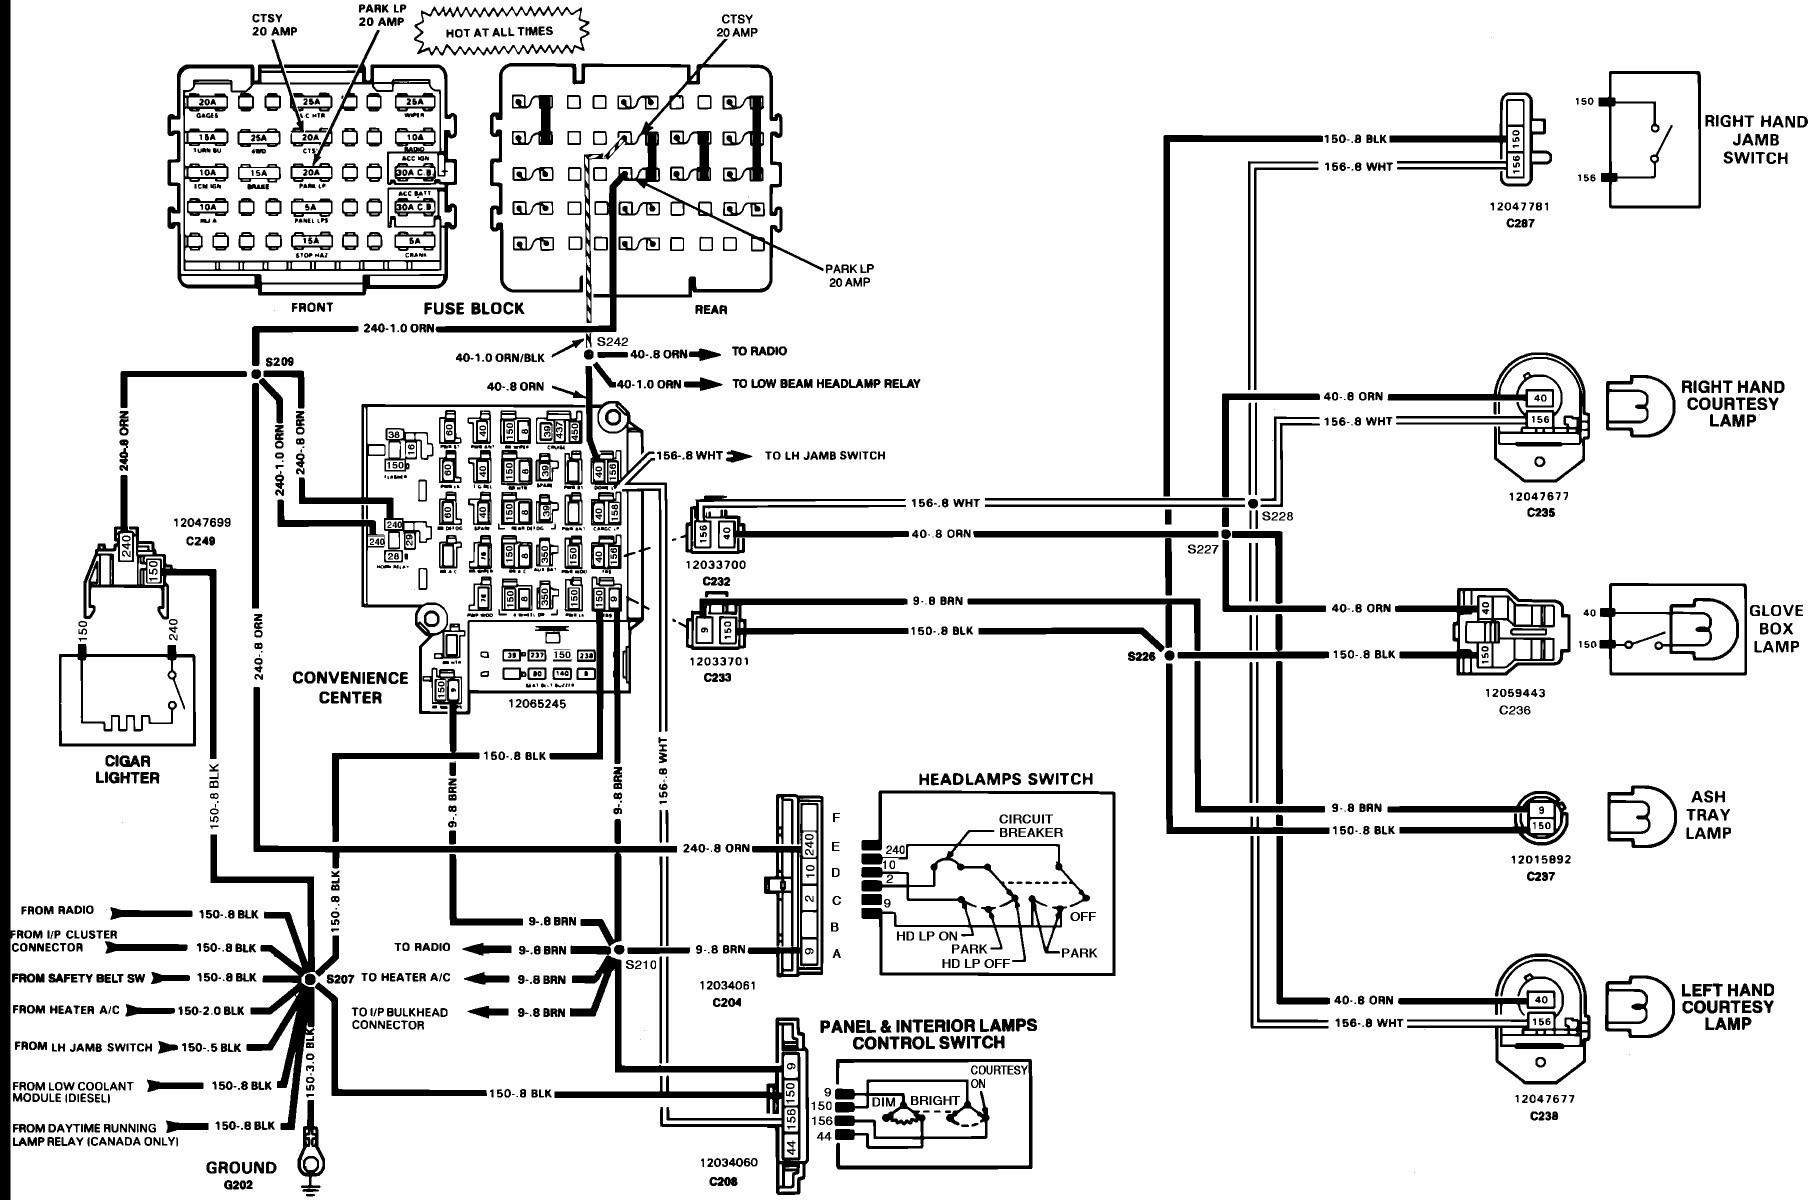 Garmin Nuvi Wiring Diagram | Wiring Diagram on garmin 3210 wiring diagram, garmin nmea 0183 wiring diagram, garmin gps tractor, garmin nuvi wiring diagram, garmin gps sensor, garmin 541s wiring diagram, garmin 740s wiring diagram, calamp gps wiring diagram, garmin gps serial number, garmin gps wire, garmin gps parts list, garmin gpsmap wiring diagram, garmin fishfinder wiring diagram, garmin gps repair, garmin gps power supply, garmin gps plug, garmin antenna wiring diagram, garmin 2010c wiring diagram, garmin radar wiring diagram, garmin 172c wiring diagram,